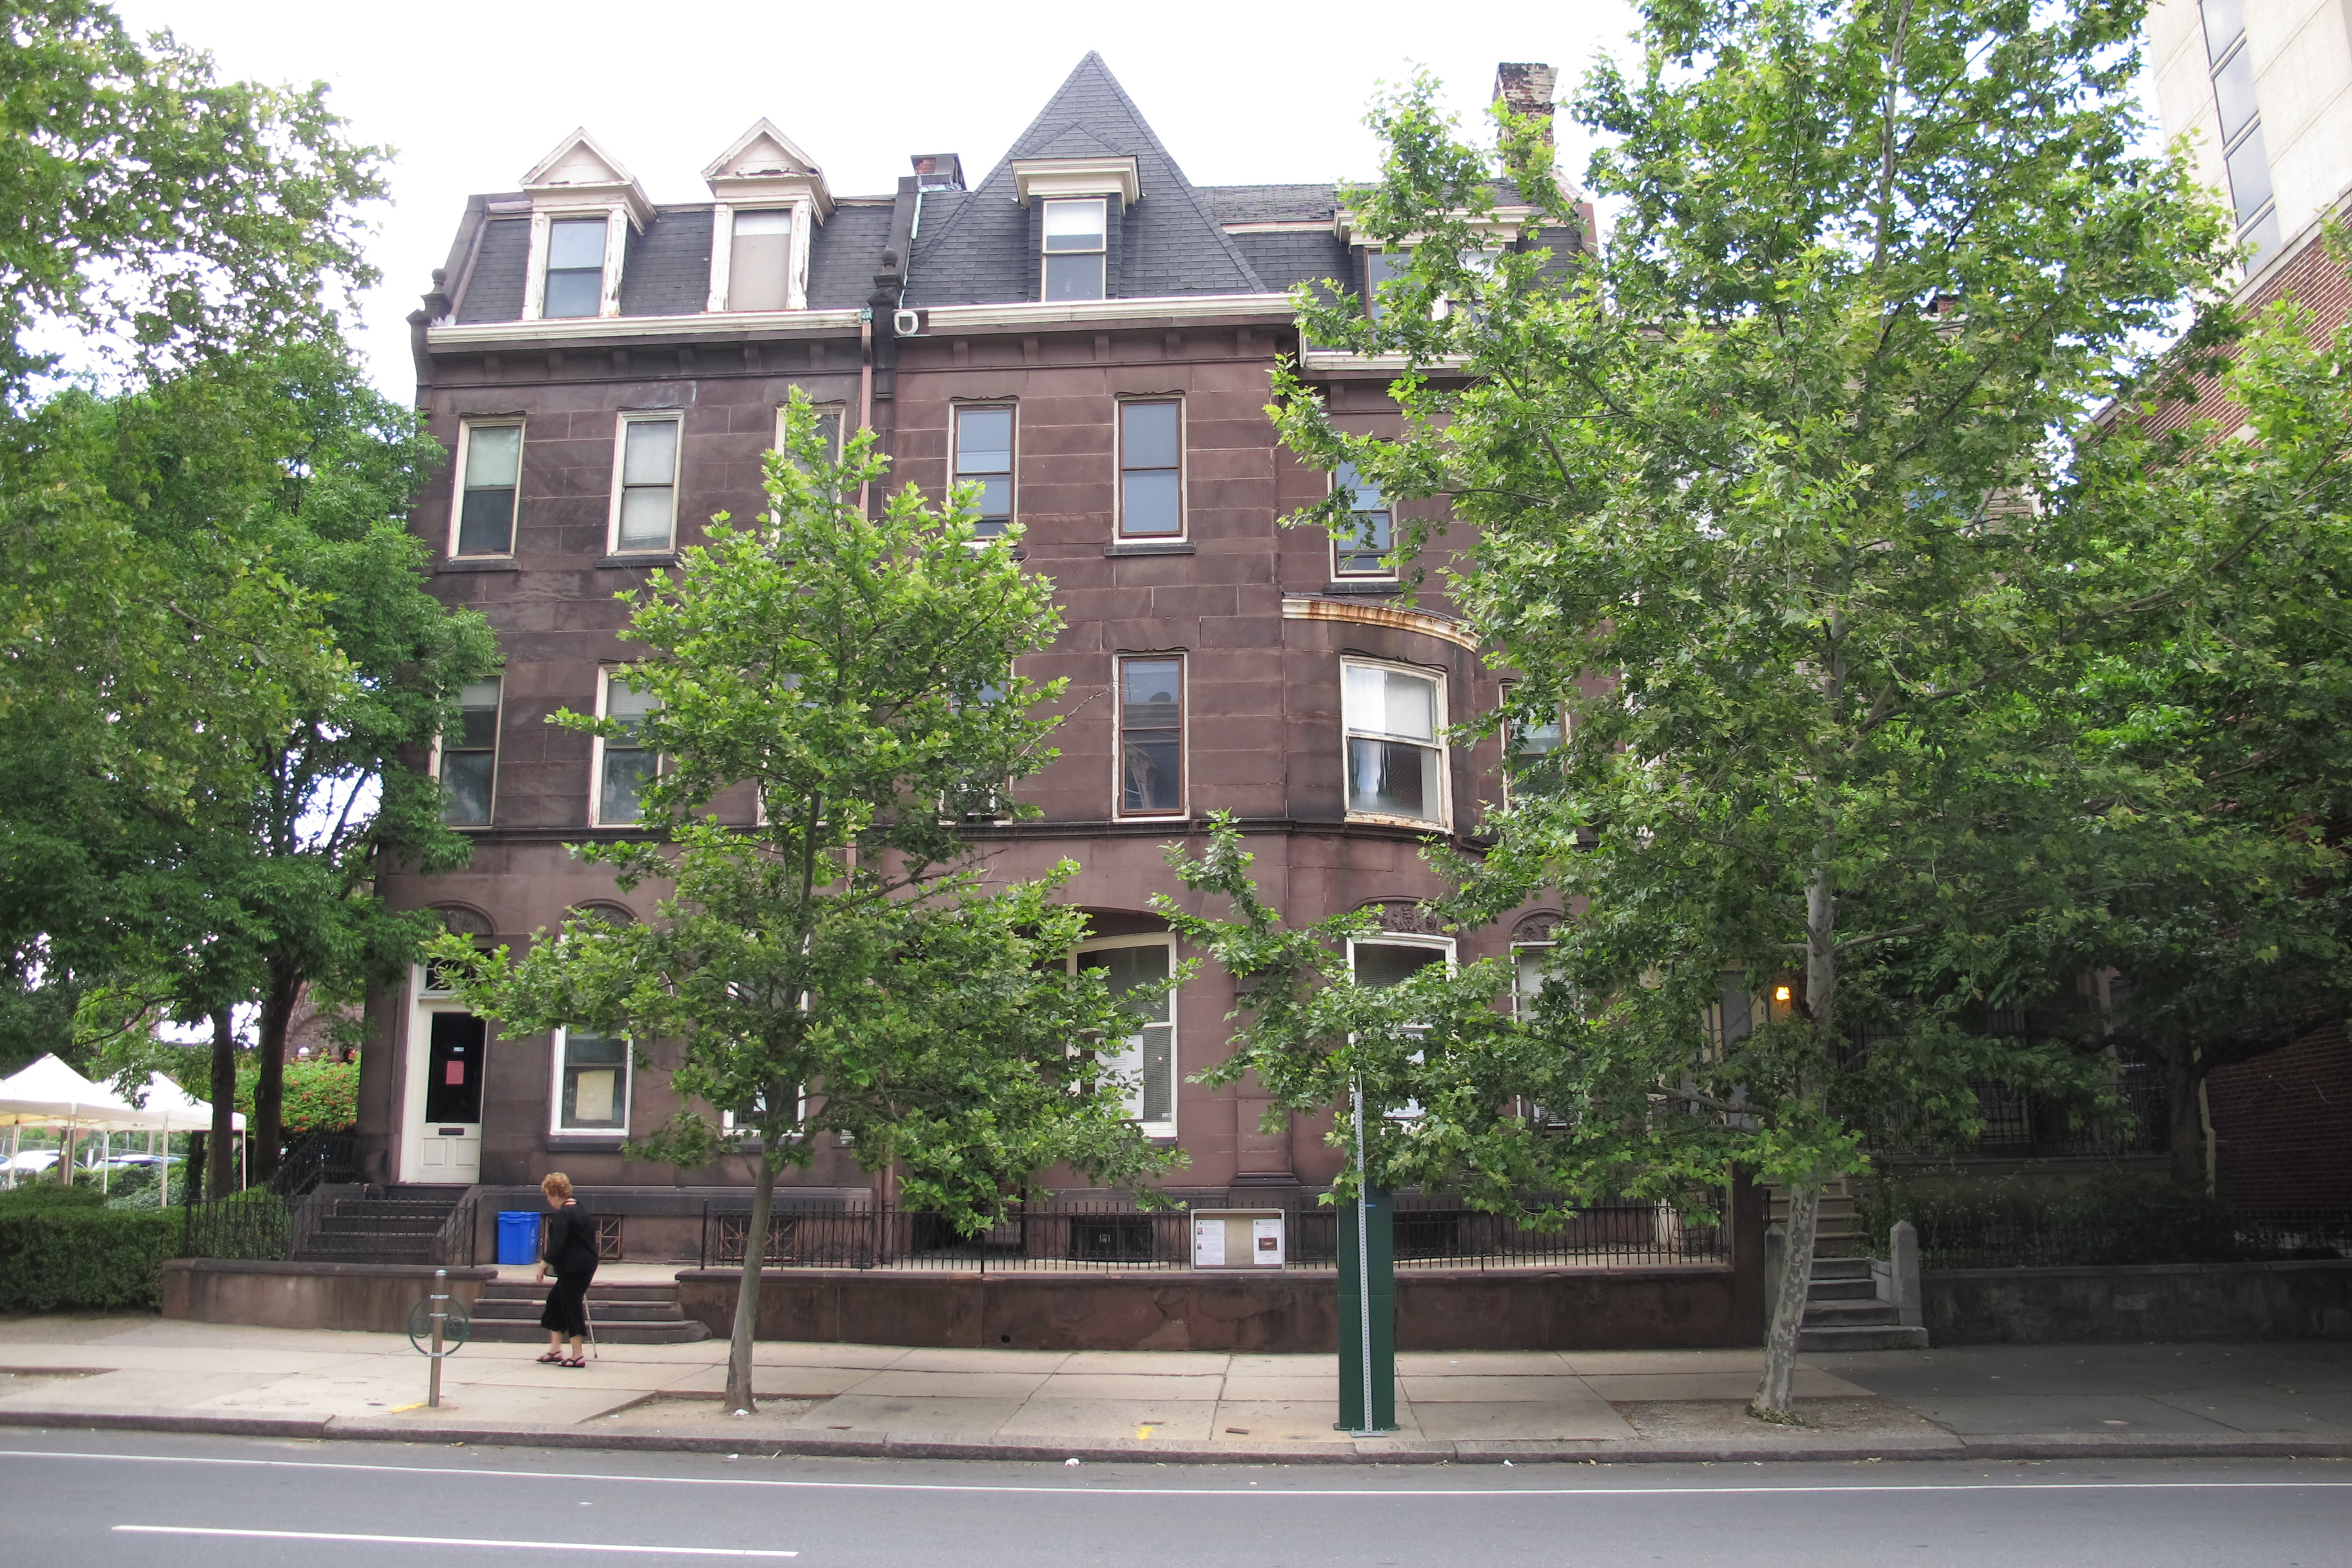 The Historical Commission approved demolition of these two historic brownstones on the 3700 block of Chestnut Street to make way for a residential tower to be built by the Episcopal Cathedral.